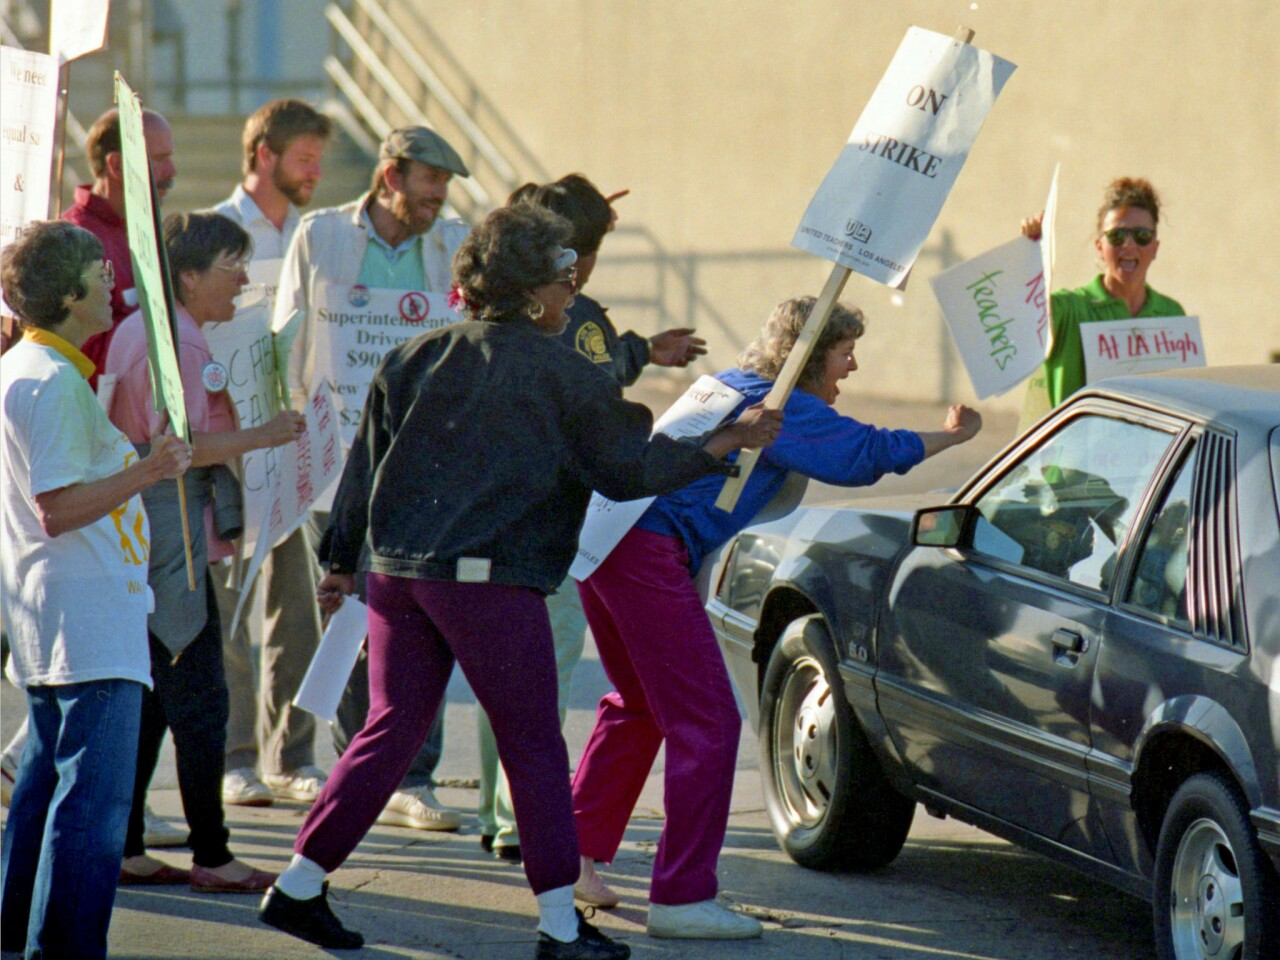 May 23, 1989: Striking teachers challenge car entering parking lot at Los Angeles High School during 1989 LAUSD teachers' strike.